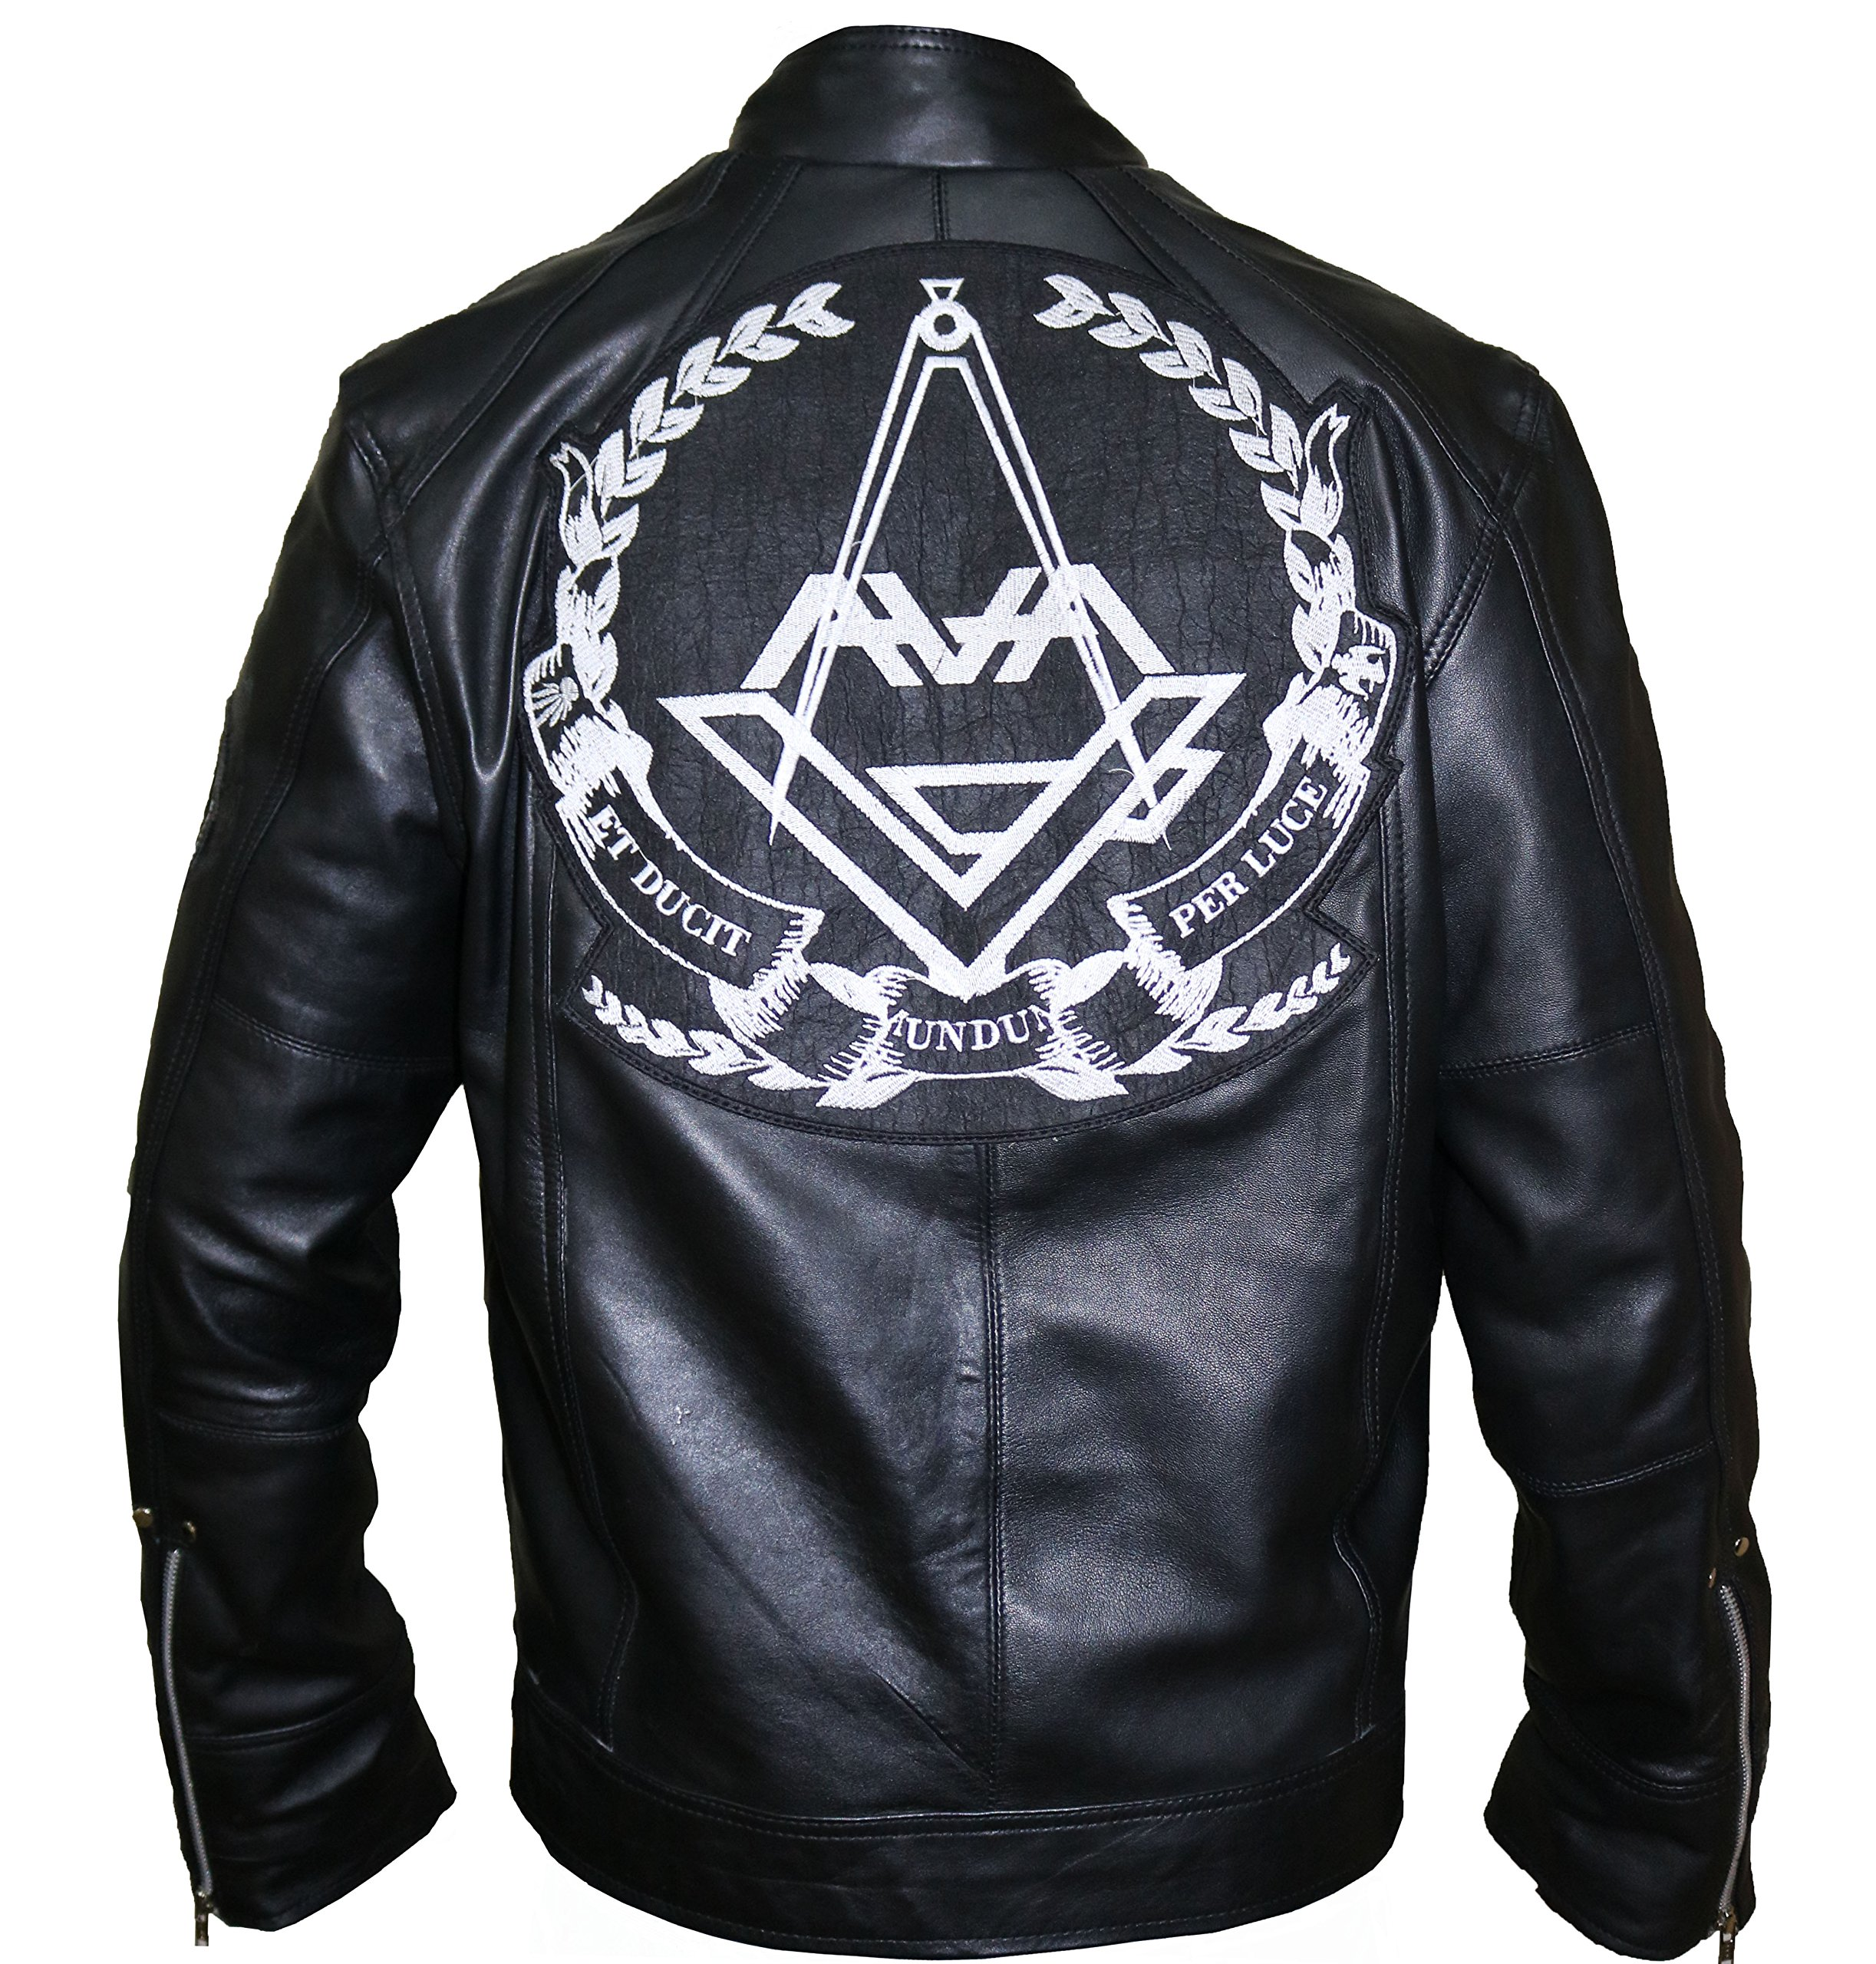 Angels and Airwaves Love Tom Delonge Cow Leather Jacket,3XL.